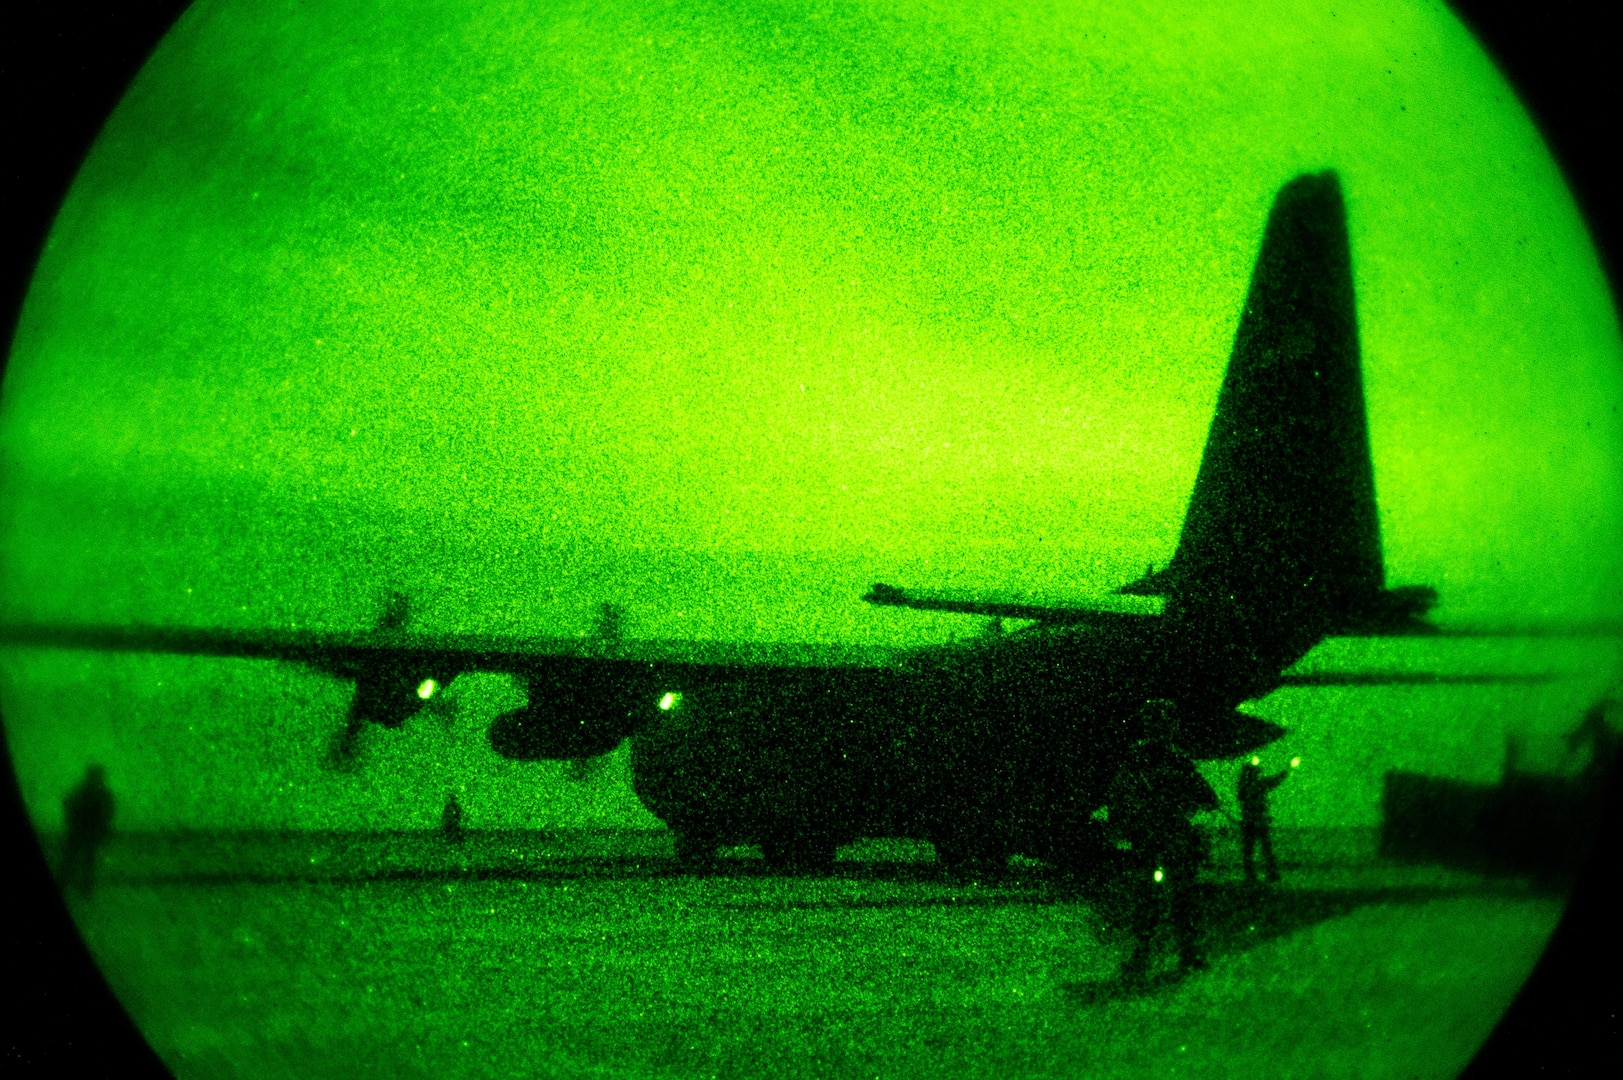 A 746th Expeditionary Airlift Squadron C-130 is guarded by members of a security forces team and 821st Contingency Response Group Airmen during blackout conditions while being unloaded by aerial porters at Qayyarah West Airfield, Iraq, in support of Combined Joint Task Force - Operation Inherent Resolve, Nov. 12, 2016. The 821st CRG is highly-specialized in training and rapidly deploying personnel to quickly open airfields and establish, expand, sustain and coordinate air operations in austere, bare-base conditions. (U.S. Air Force photo by Senior Airman Jordan Castelan)